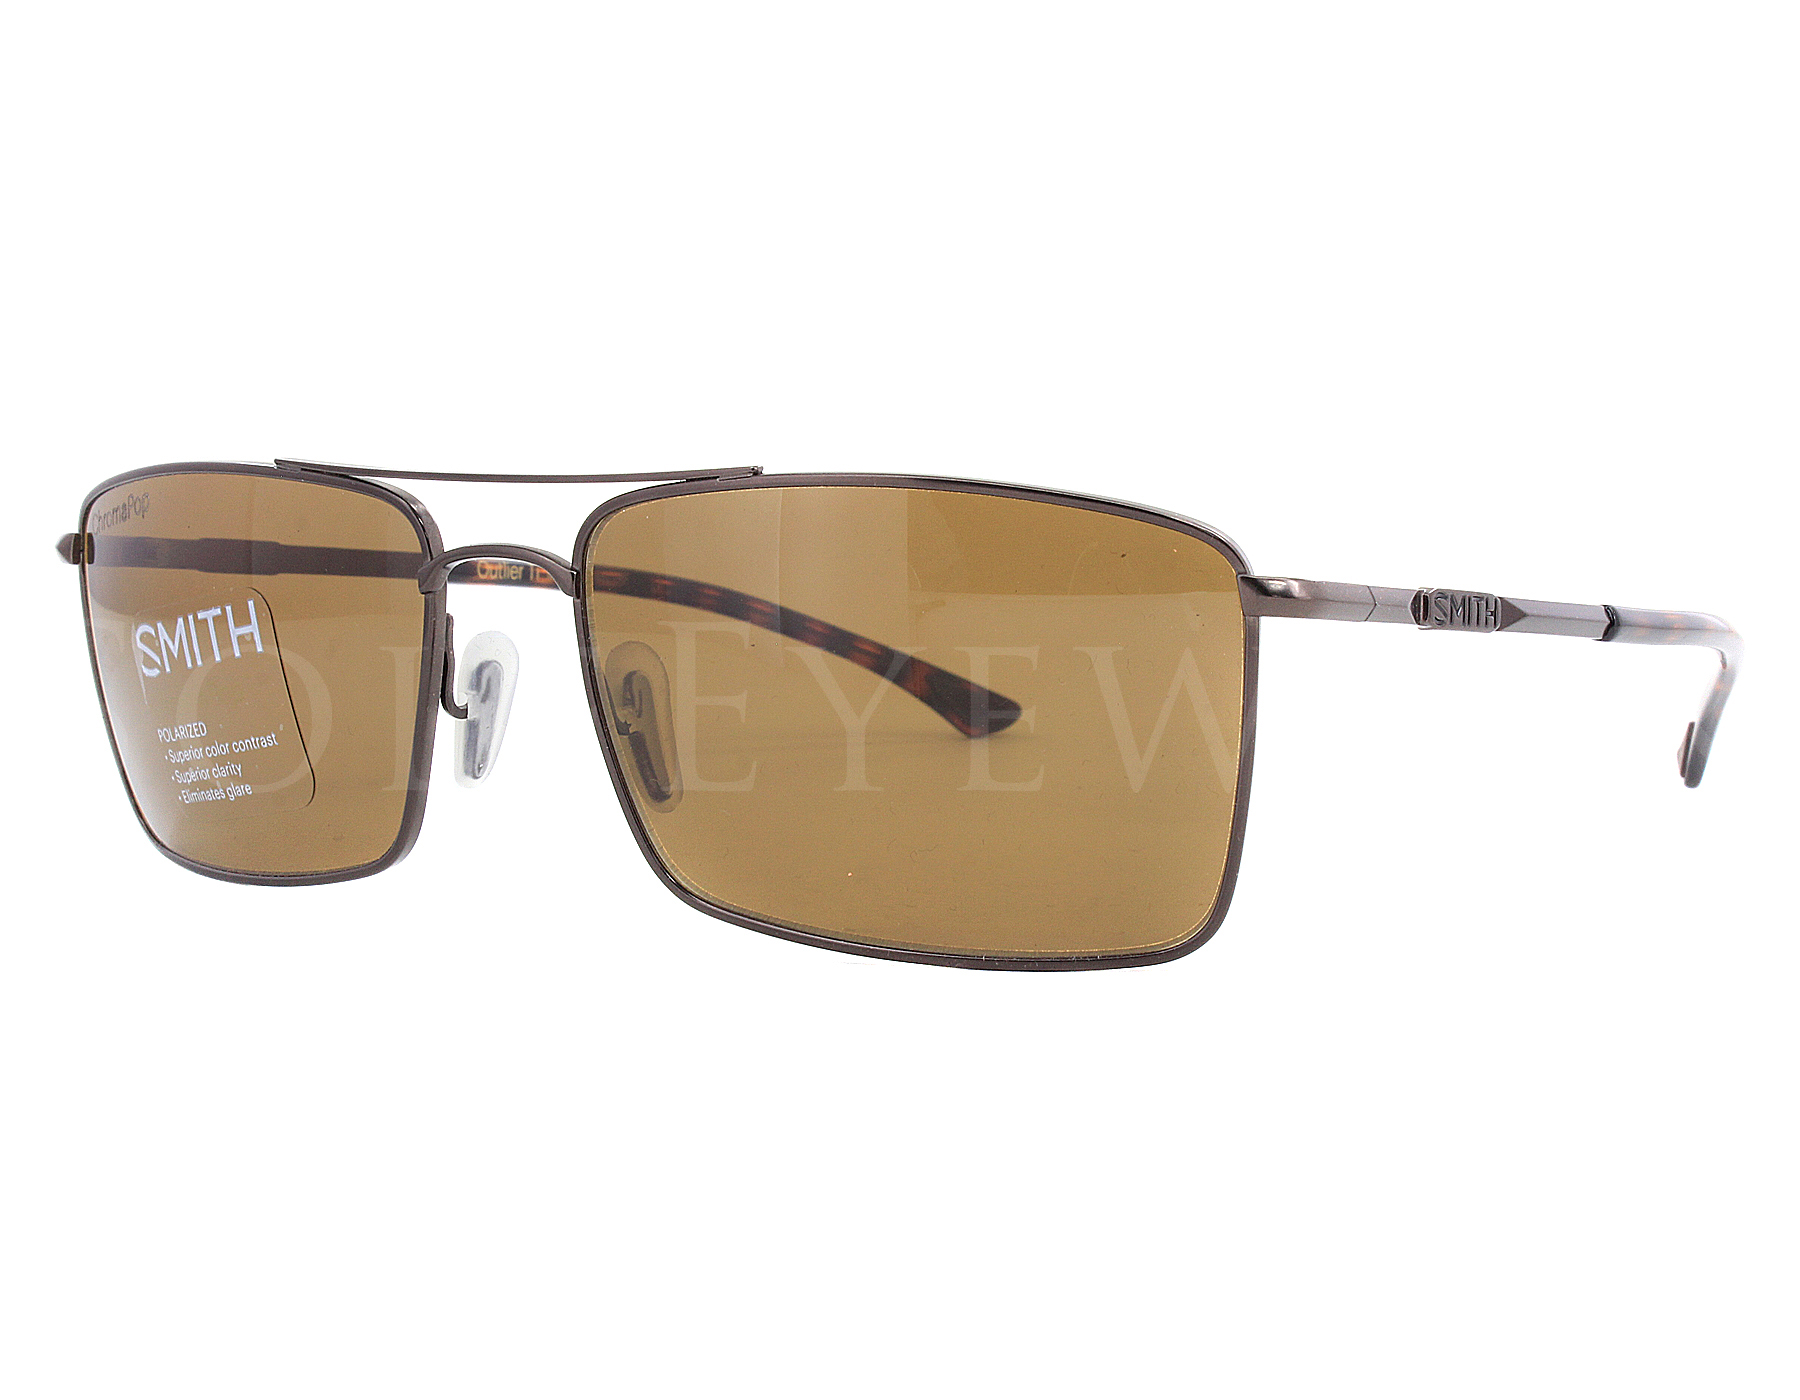 24fb1f0131 Details about NEW Smith Optics Outlier TI Matte Brown   ChromaPop Polarized  Brown Sunglasses